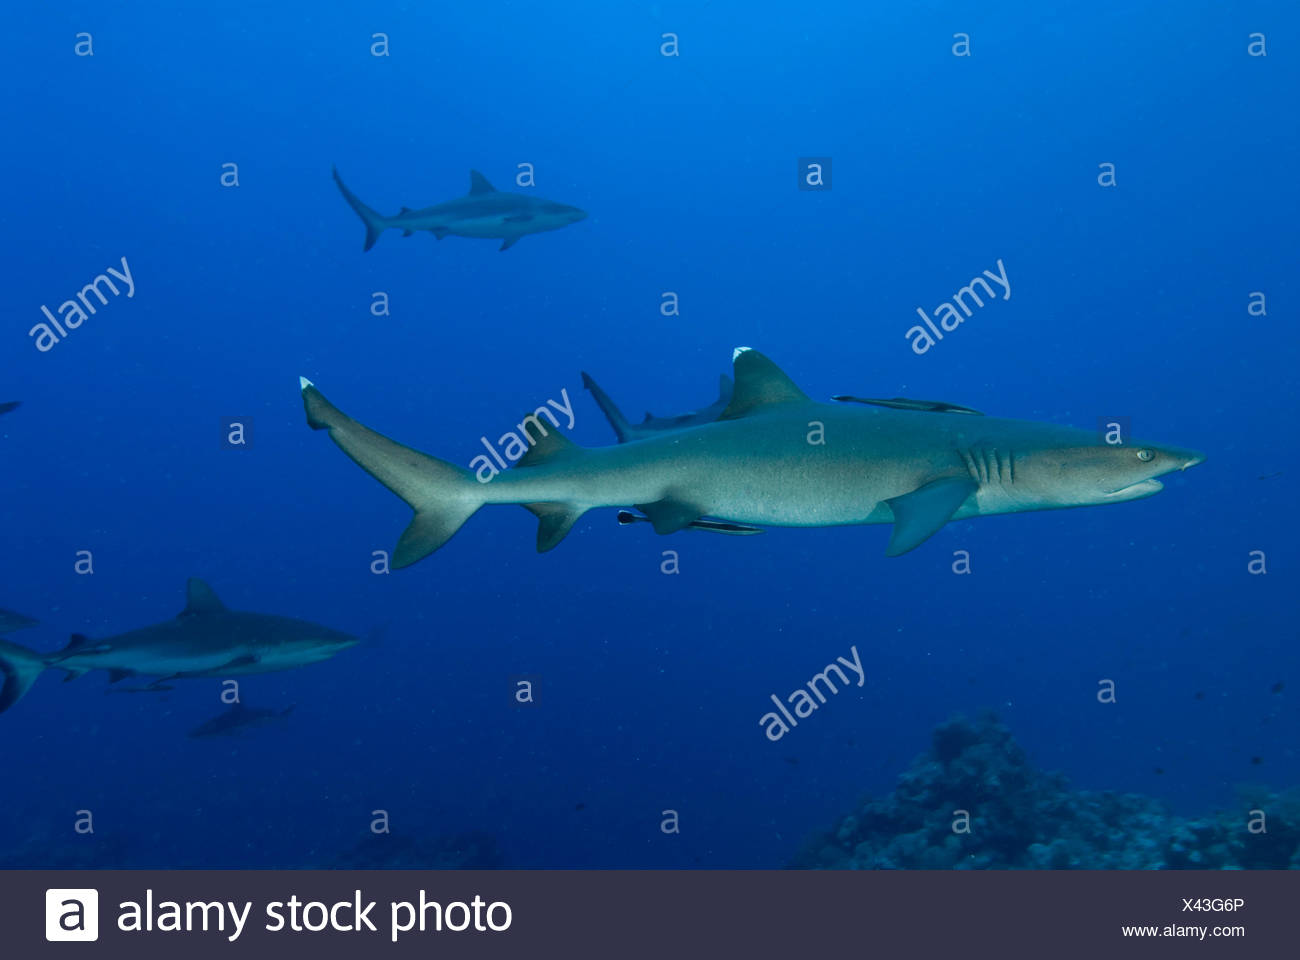 Whitetip reef shark (Triaenodon obesus) and Grey reef sharks (Carcharhinus amblyrhynchos) at North Horn, Queensland, Australia - Stock Image